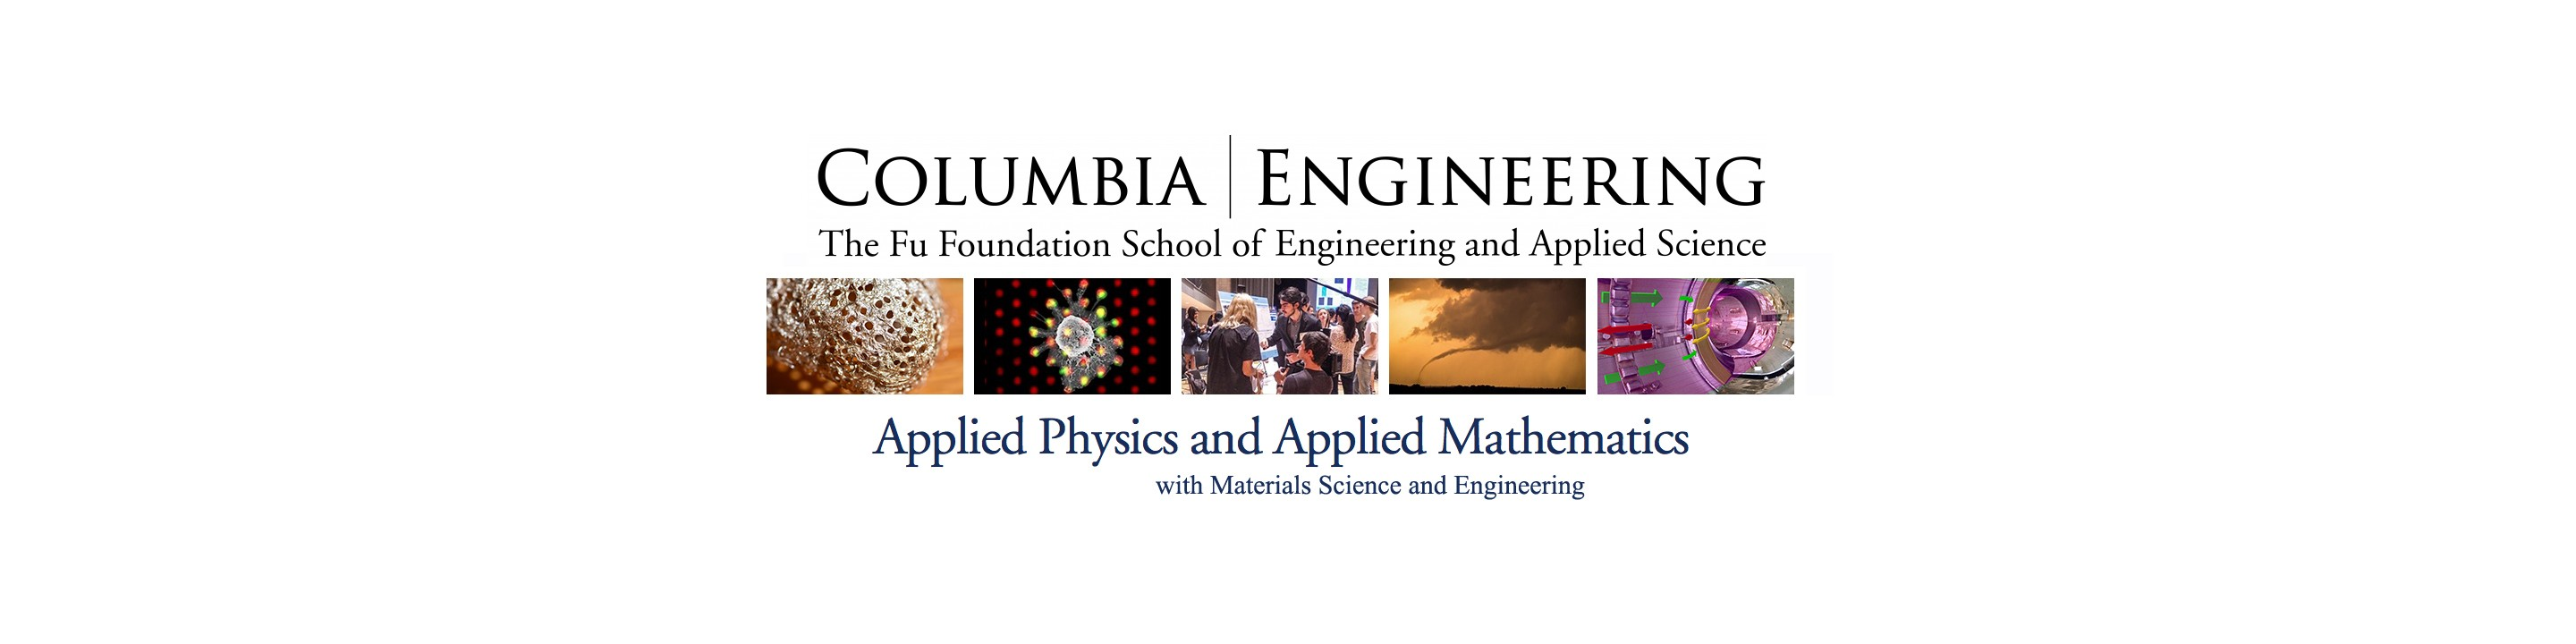 Applied Physics And Applied Mathematics At Columbia University Linkedin